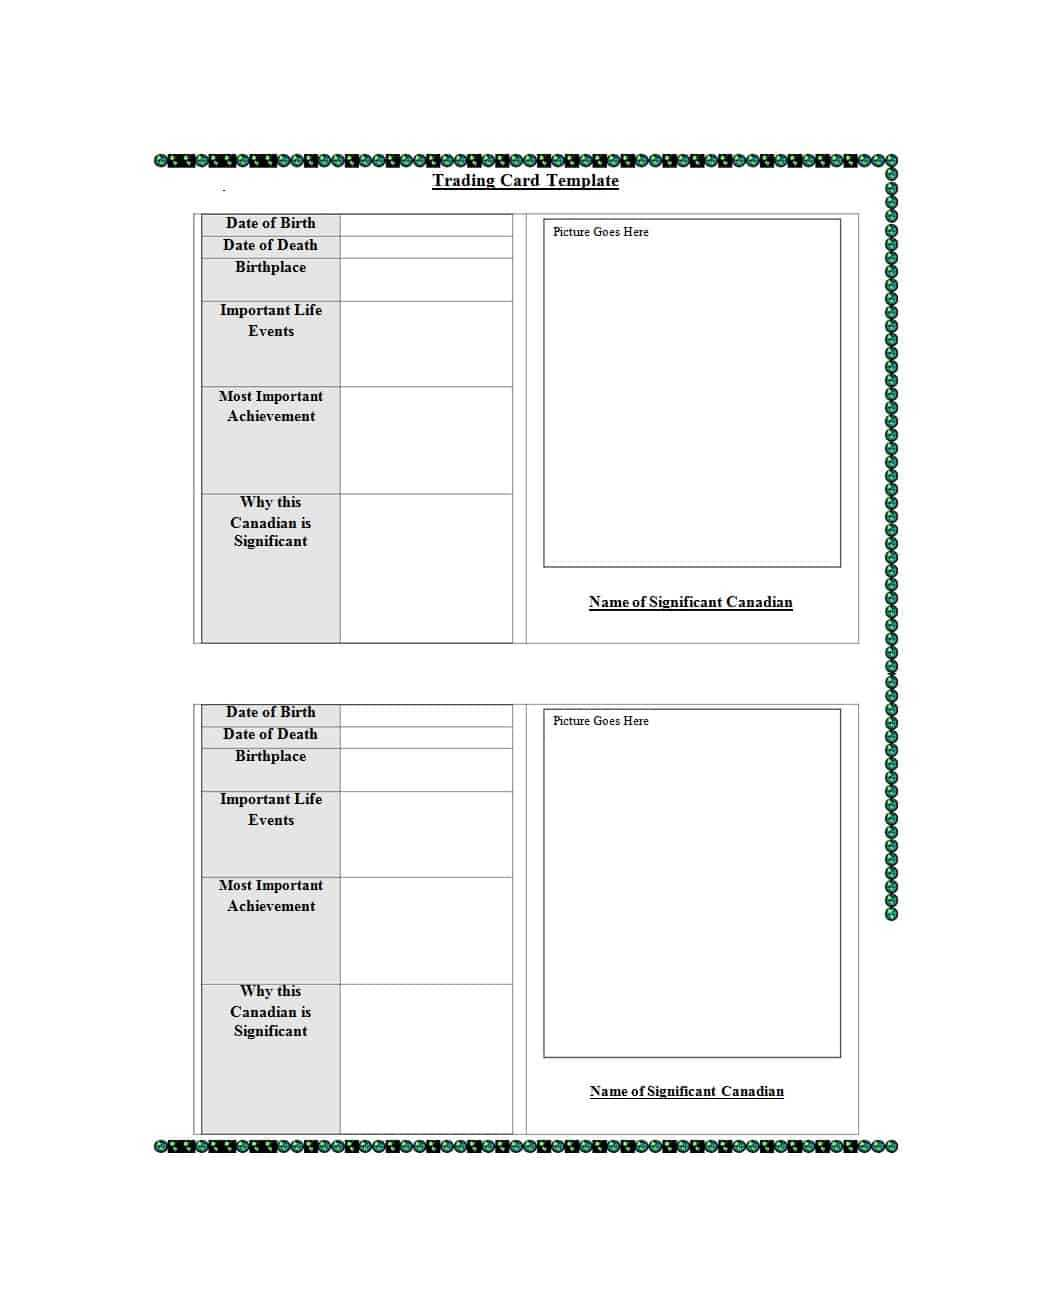 024 Baseball Trading Card Template Free Download Ideas Inside Trading Cards Templates Free Download